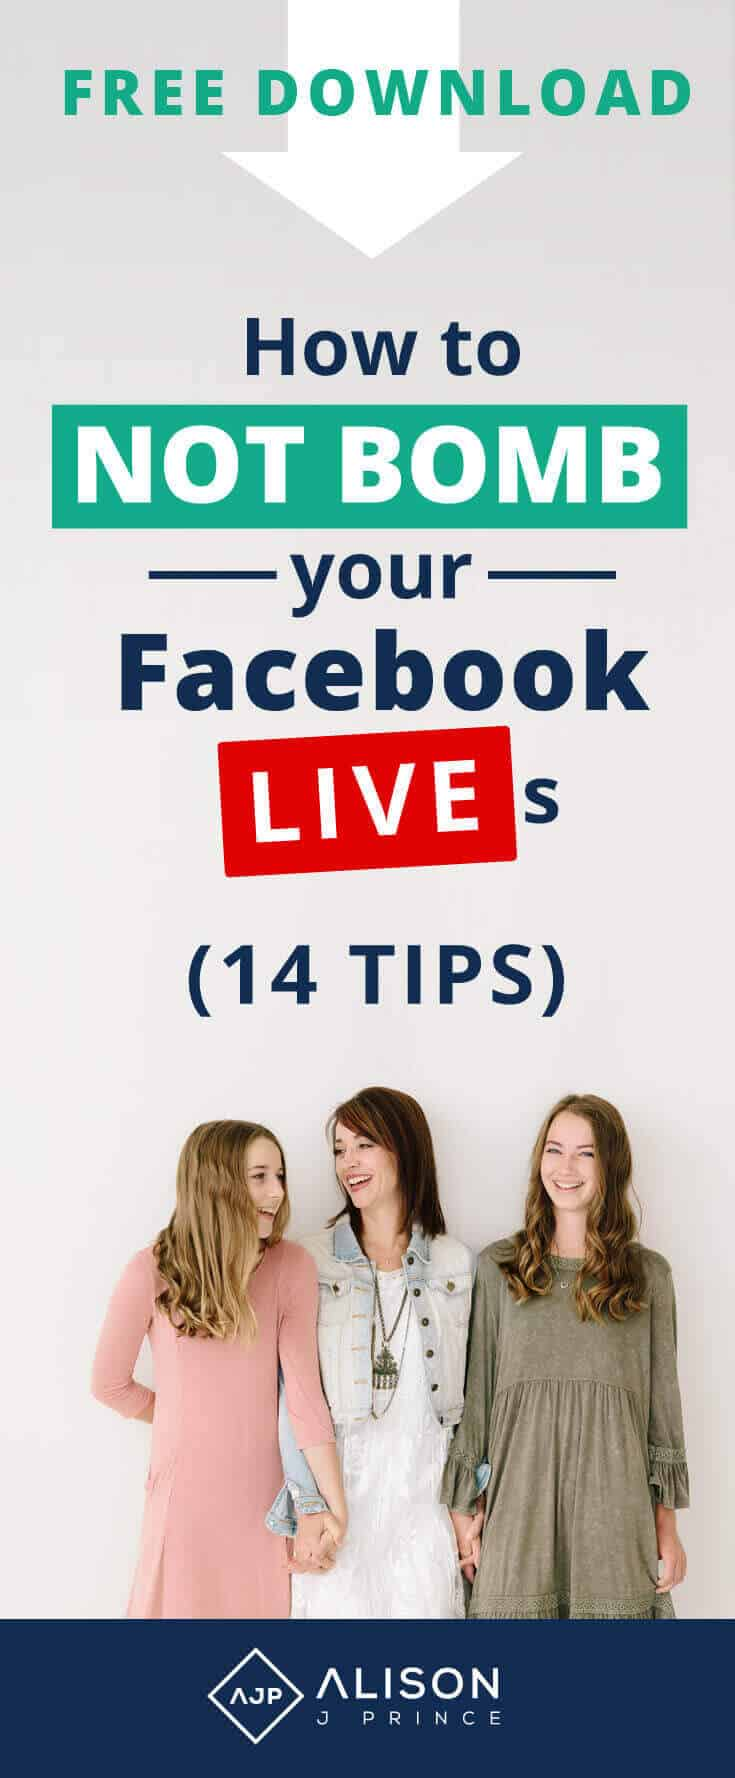 How to do a Facebook Live - 14 Tips from Alison Prince